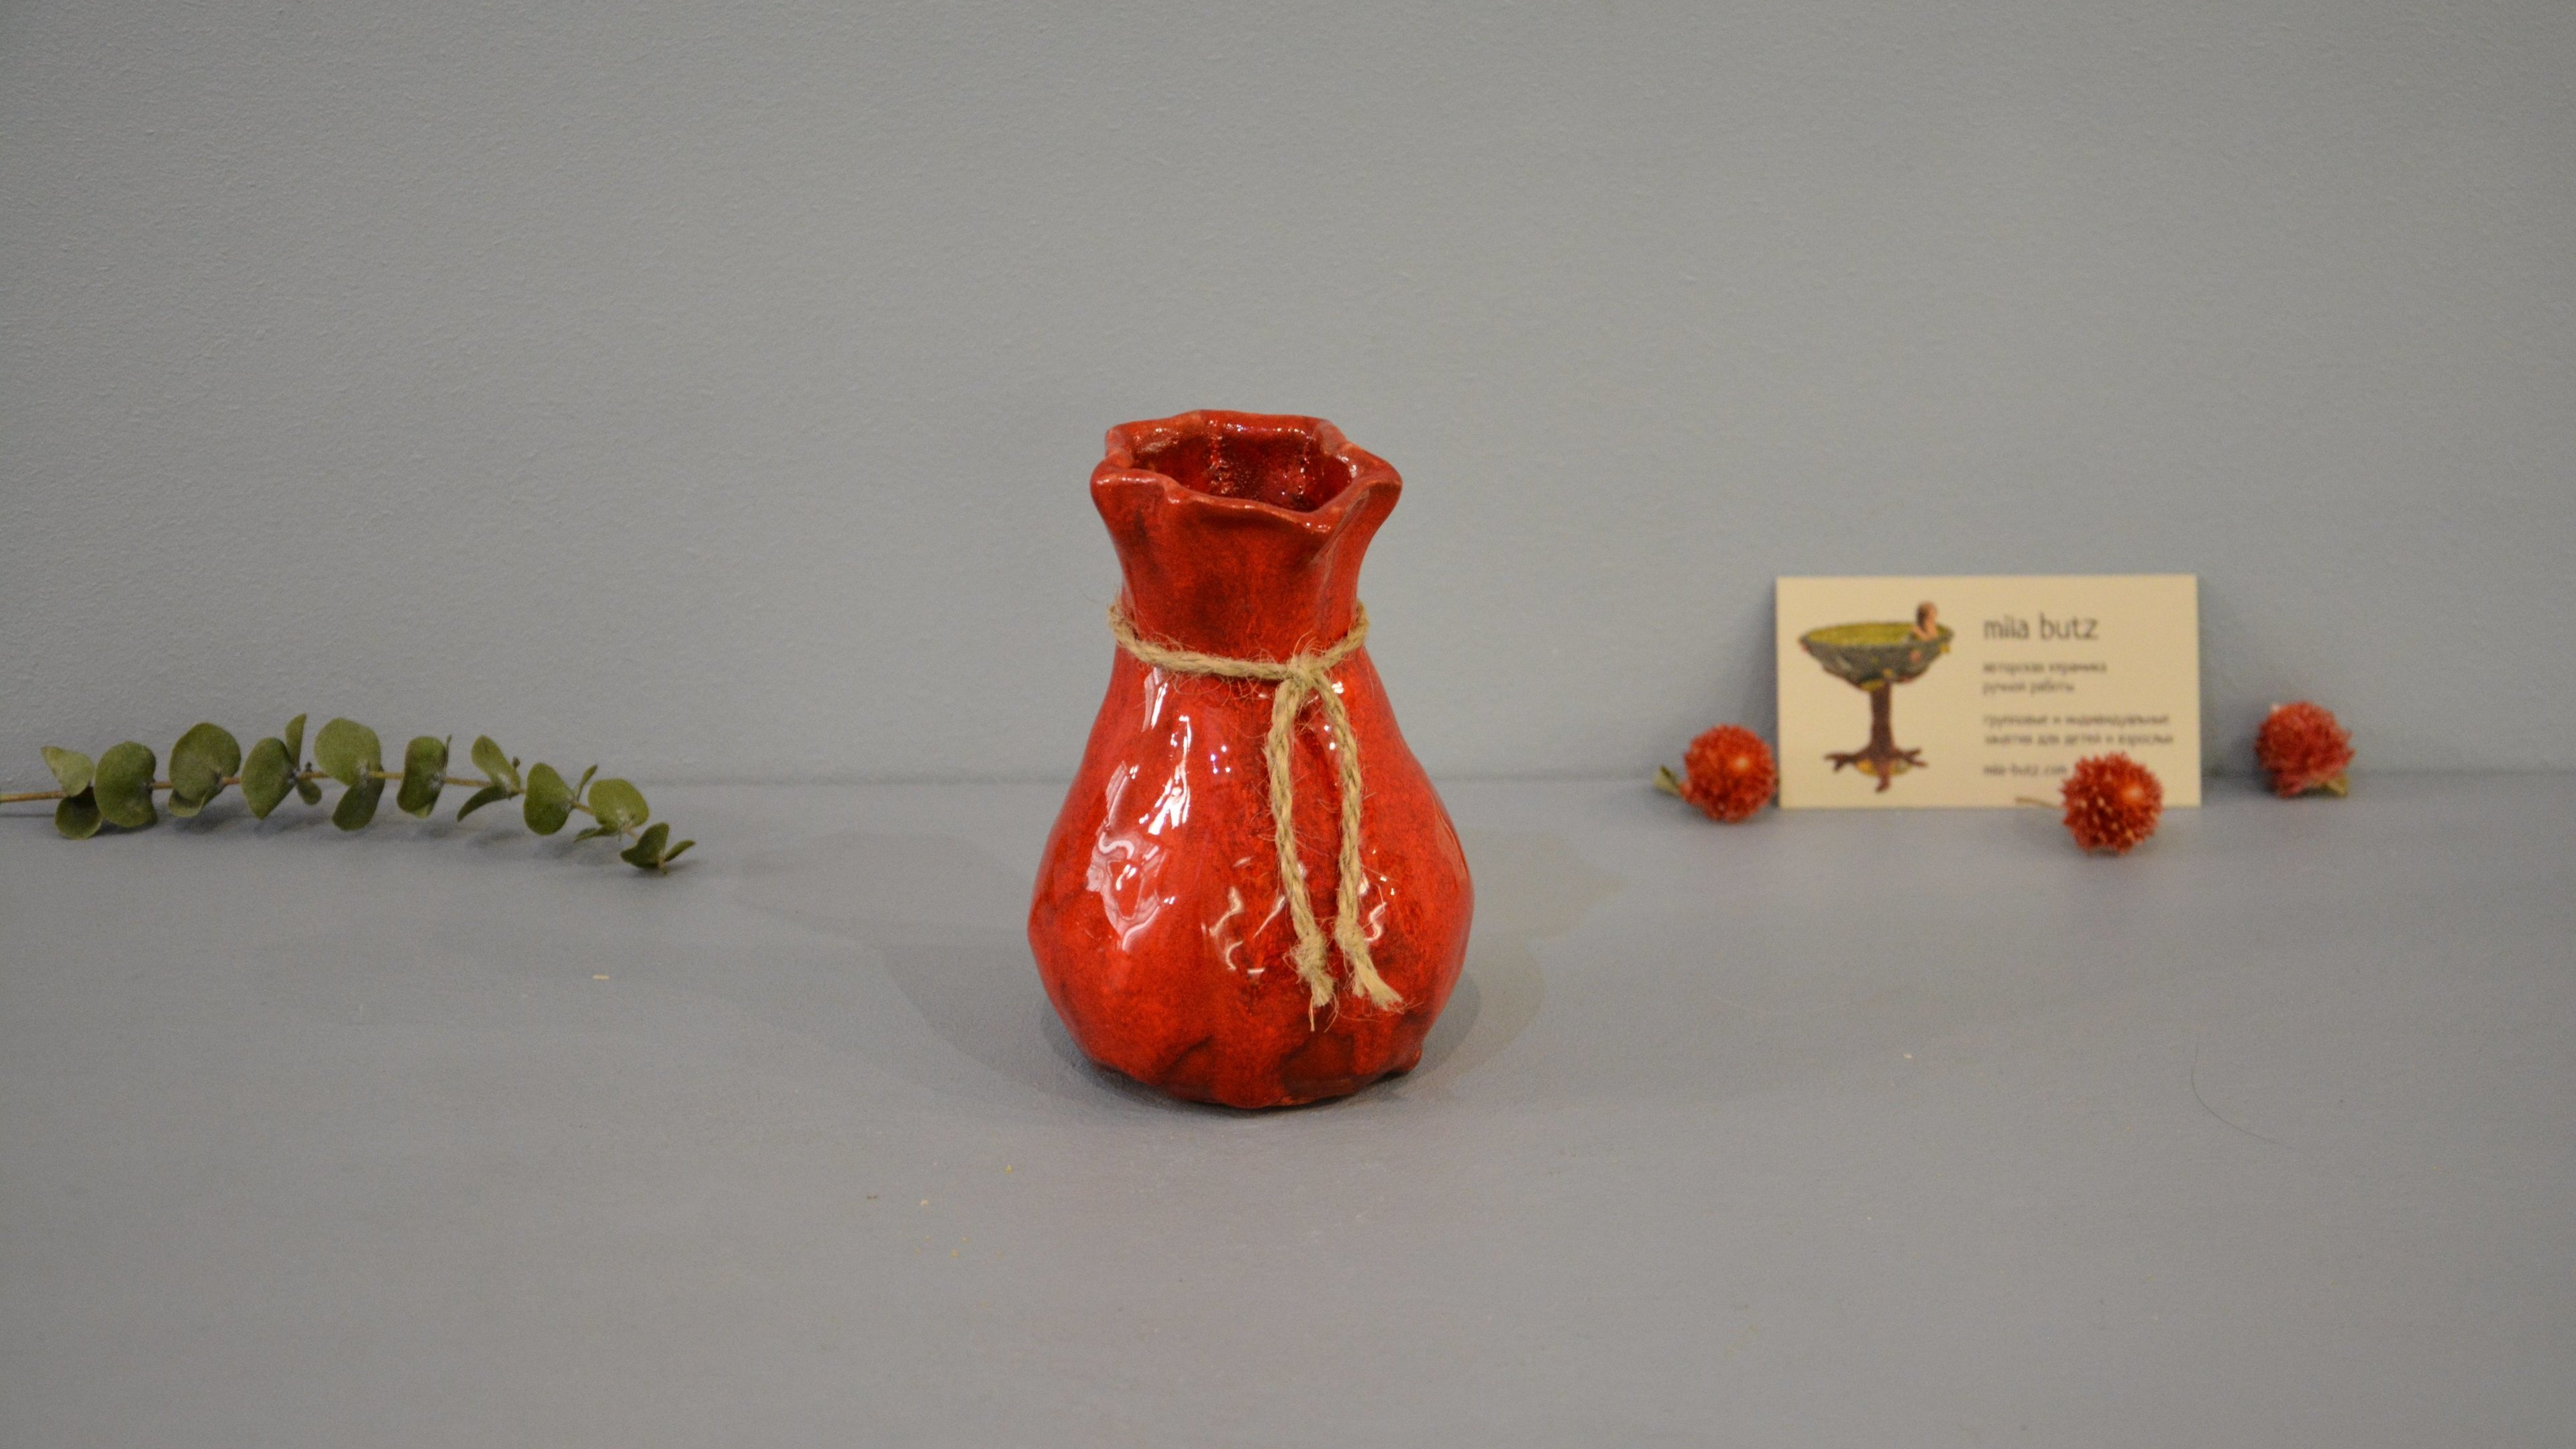 Small Vase or flowers «Red Bagful», height - 12 cm, color - red. Photo 1435-3840-2160.